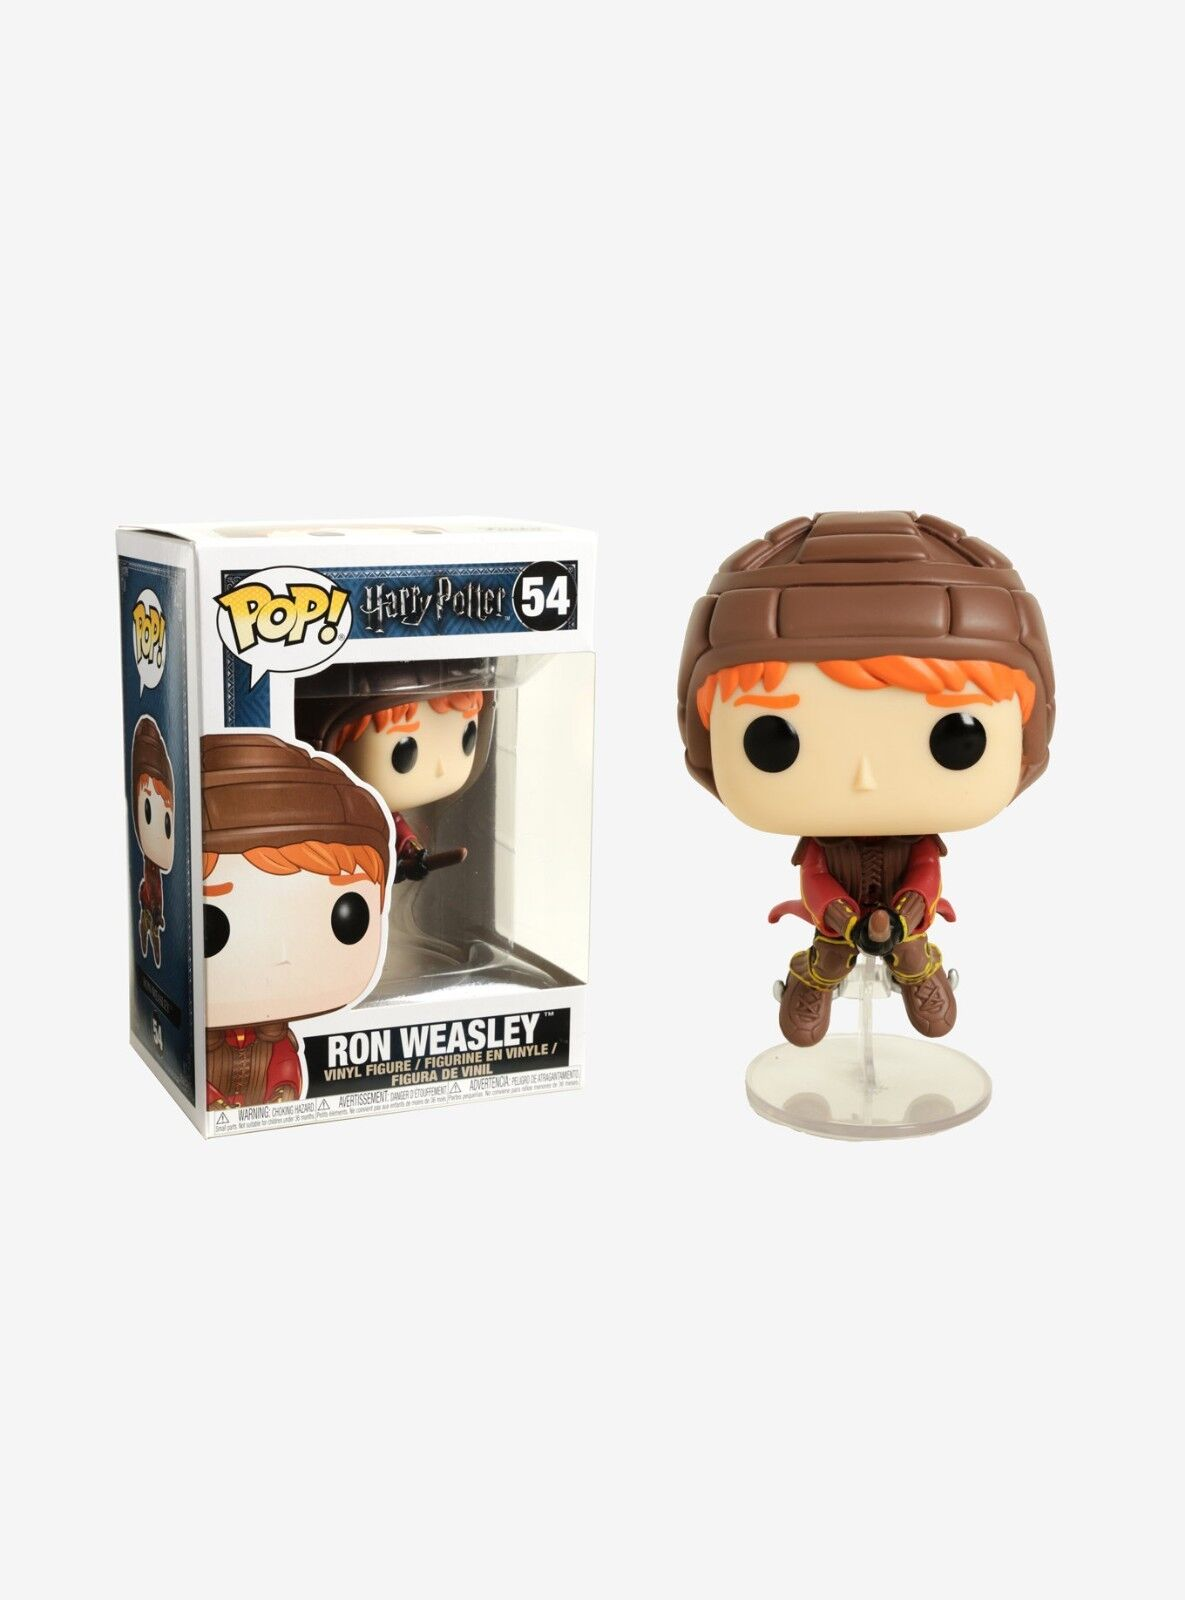 Genuine Harry Harry Harry Potter Pop  Vinyl Figure- Ron Weasley (on broom) 1174cf